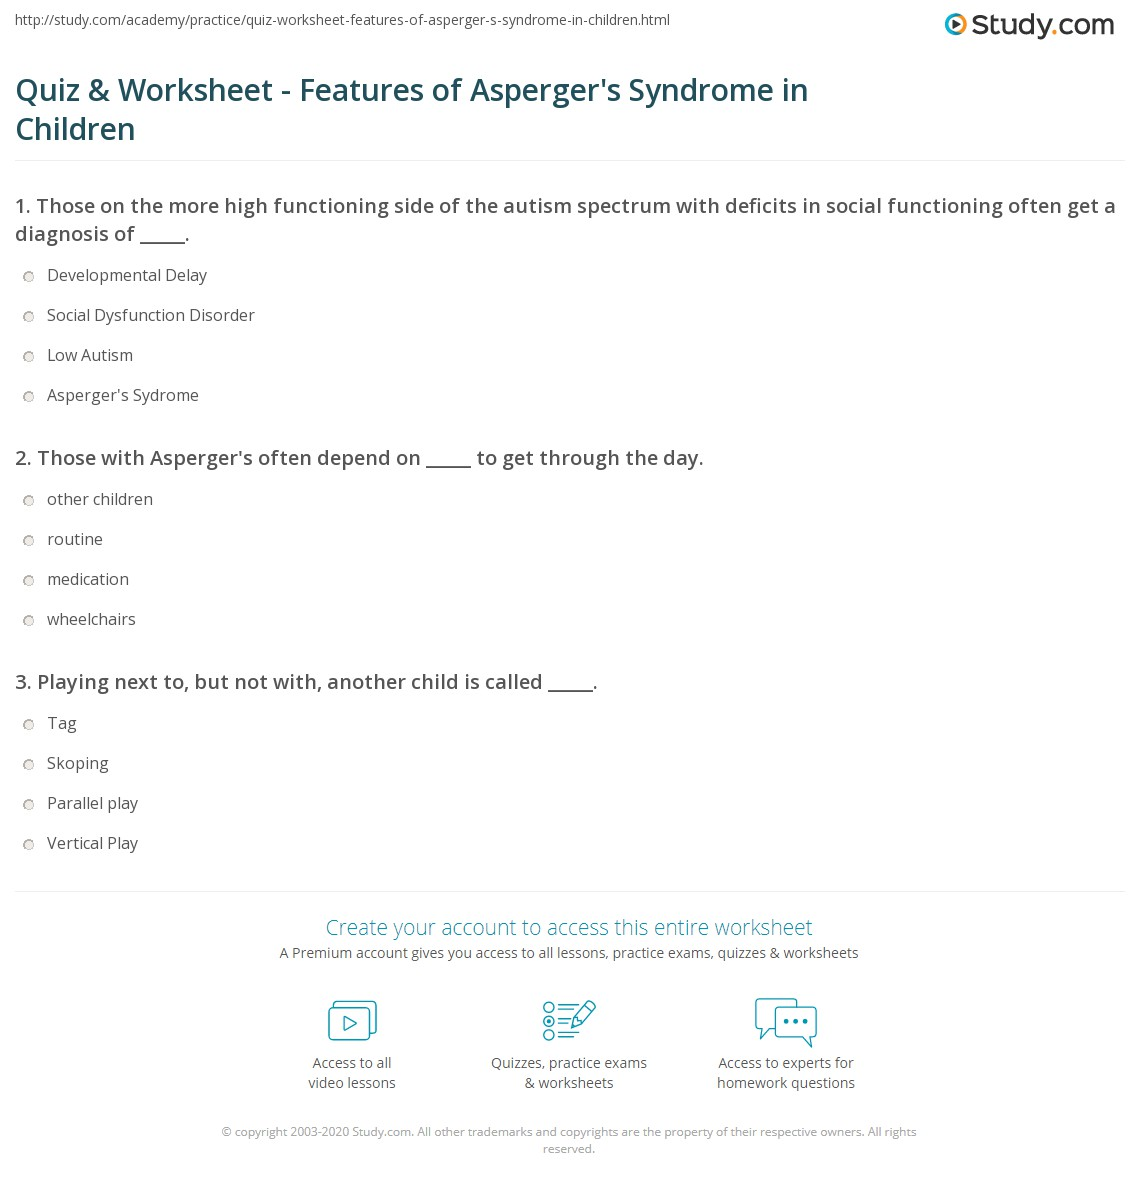 Quiz & Worksheet - Features of Asperger's Syndrome in